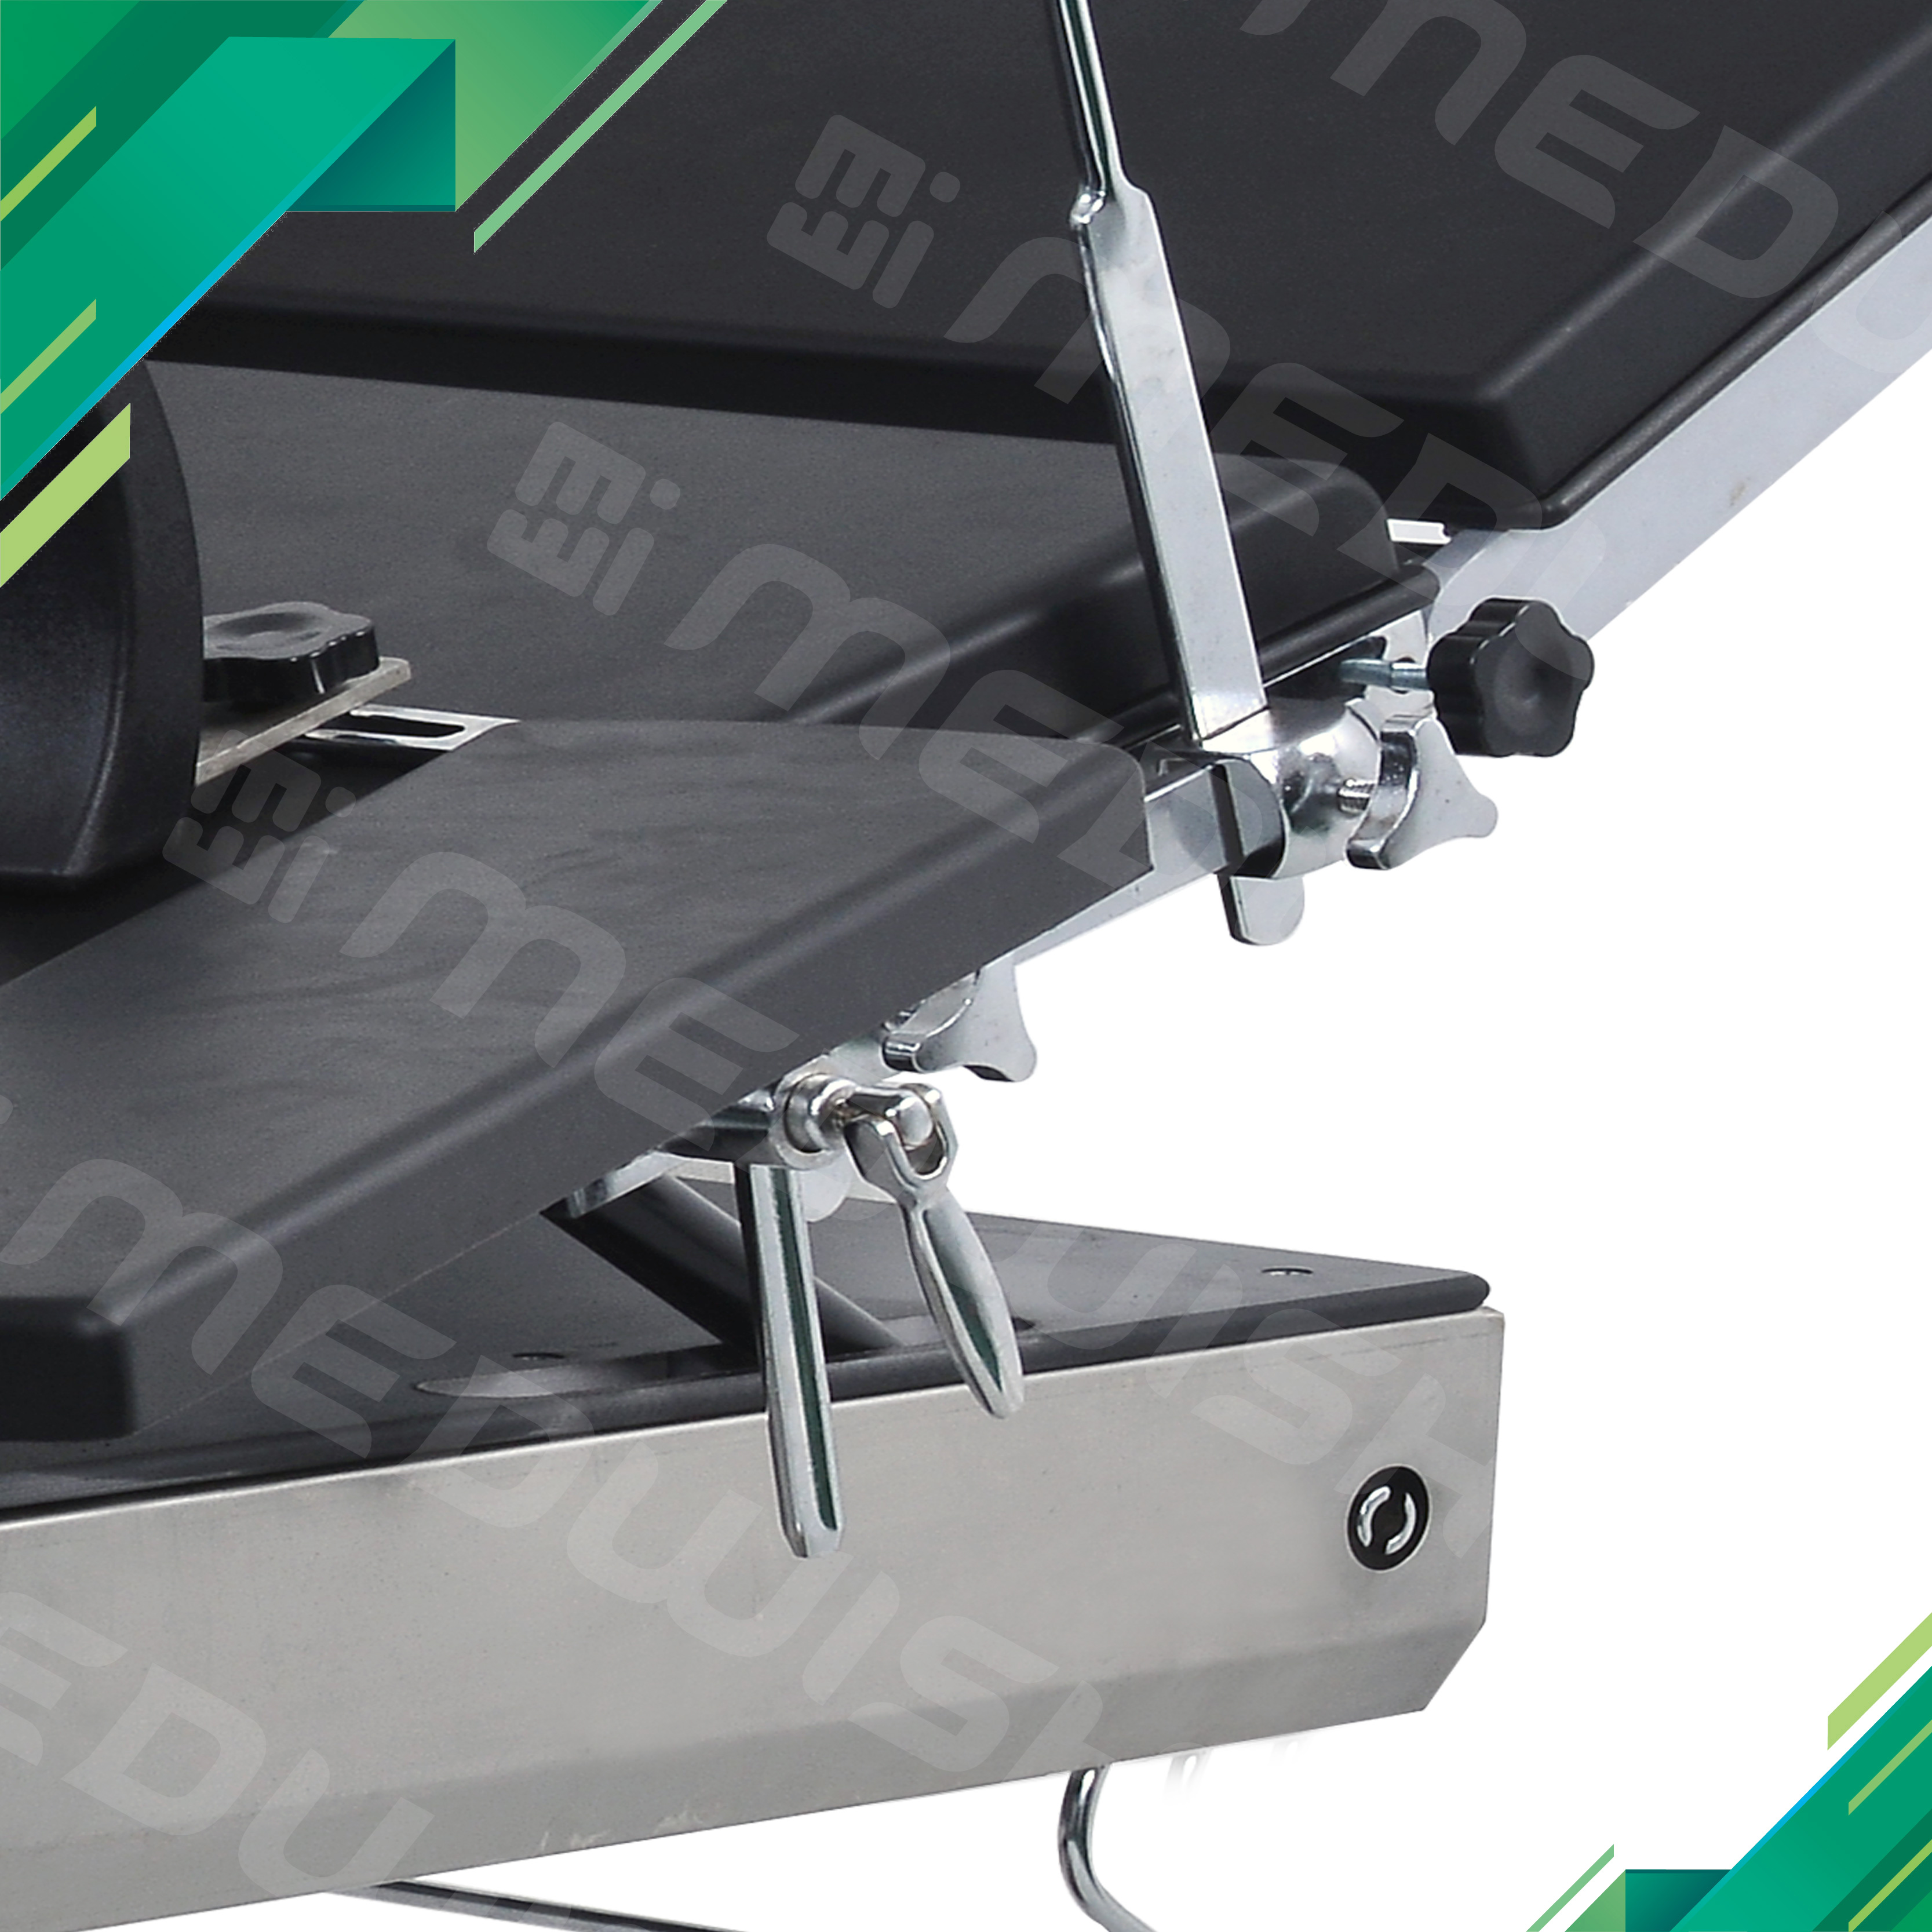 AG-OT009 Manufacturers multi-purpose OR clinic surgical patient operation room bed ot theatre electric medical operating table